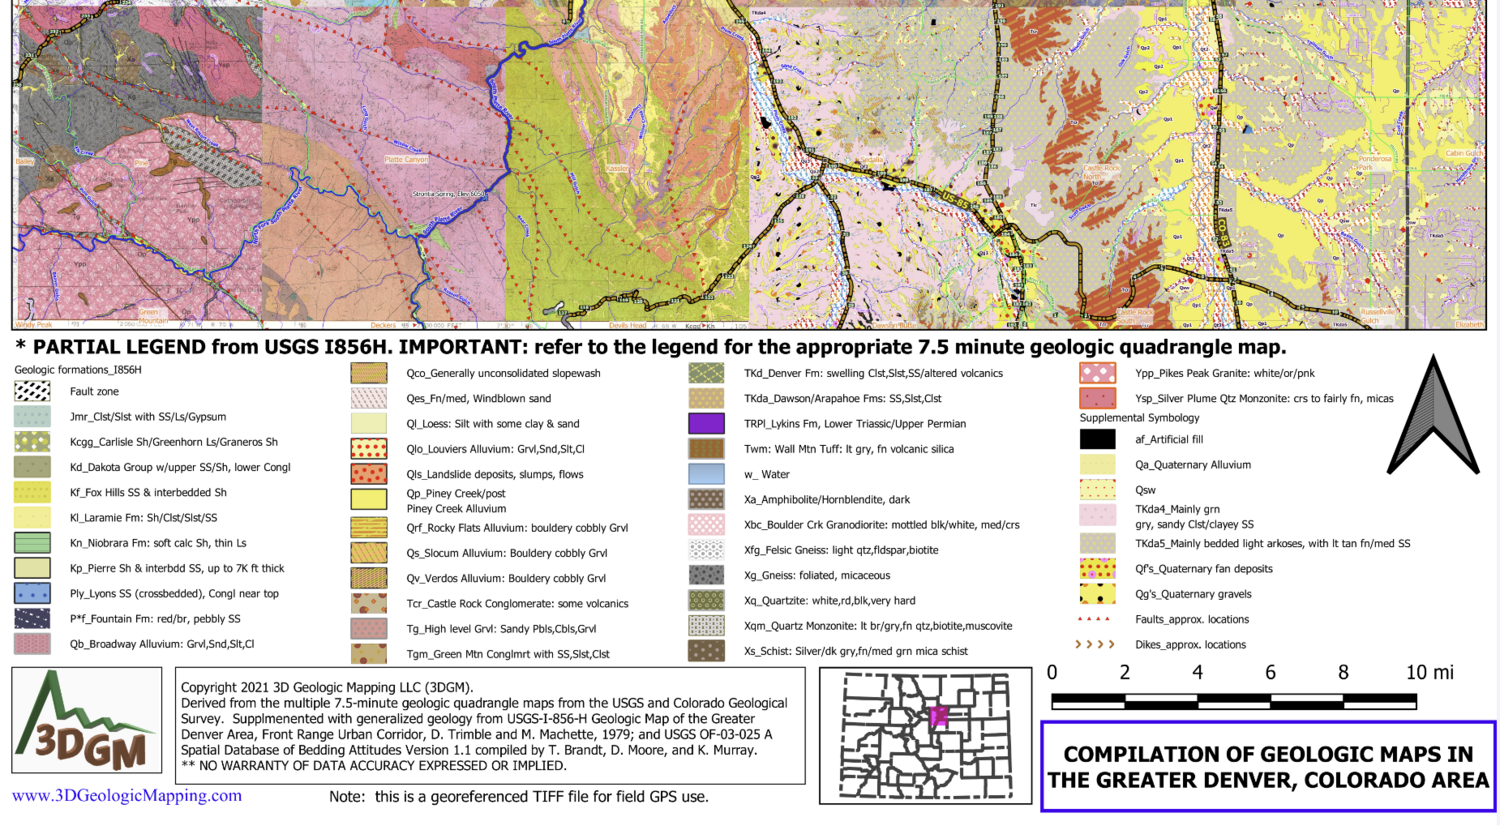 Detailed 2D Geologic Map Compilation for Metro Denver, CO.  Georeferenced map can show your location on the map using a smartphone and the Avenza Maps app (free for up to 3 maps).